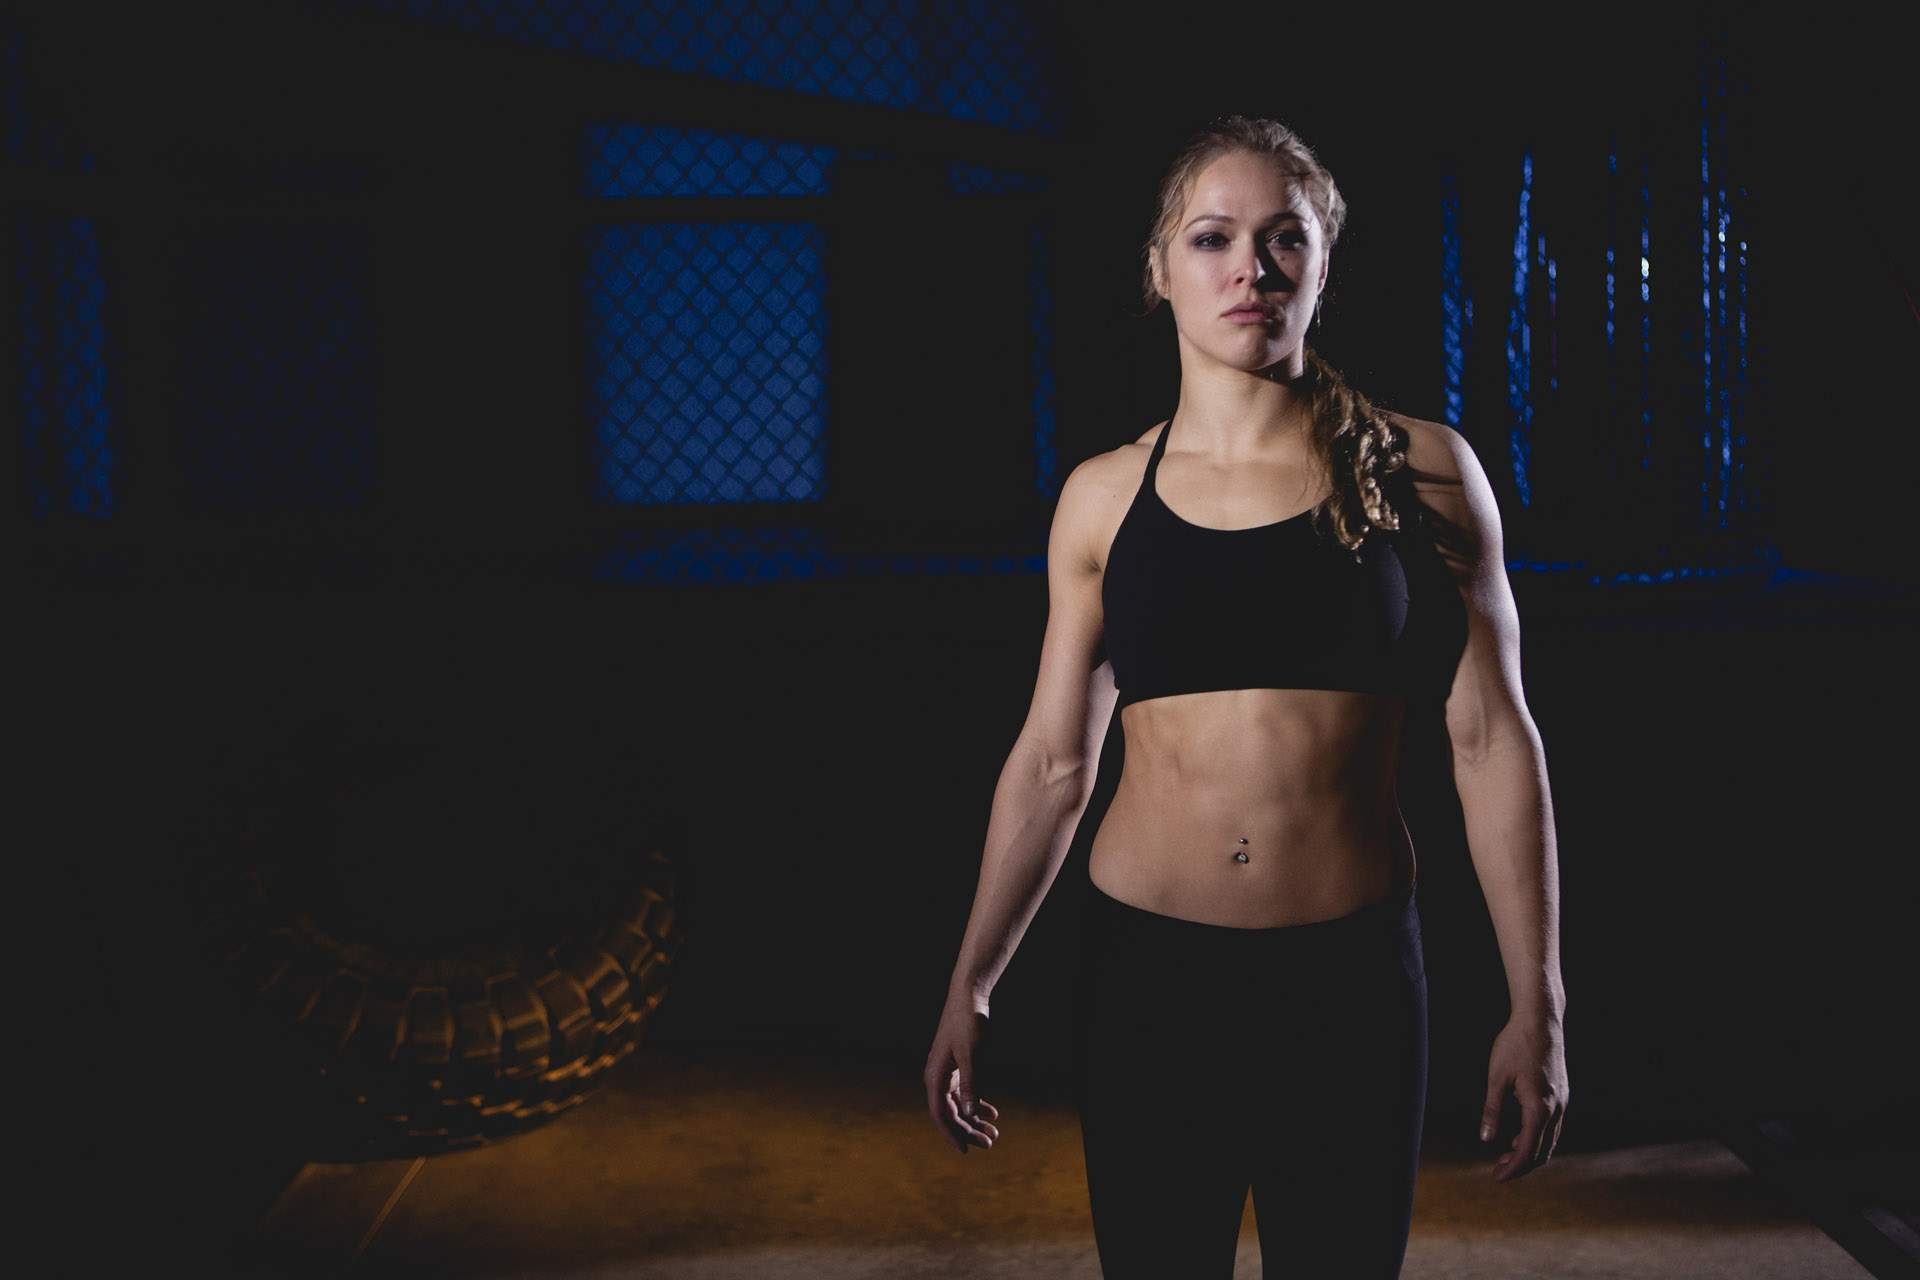 Letter to RONDA ROUSEY